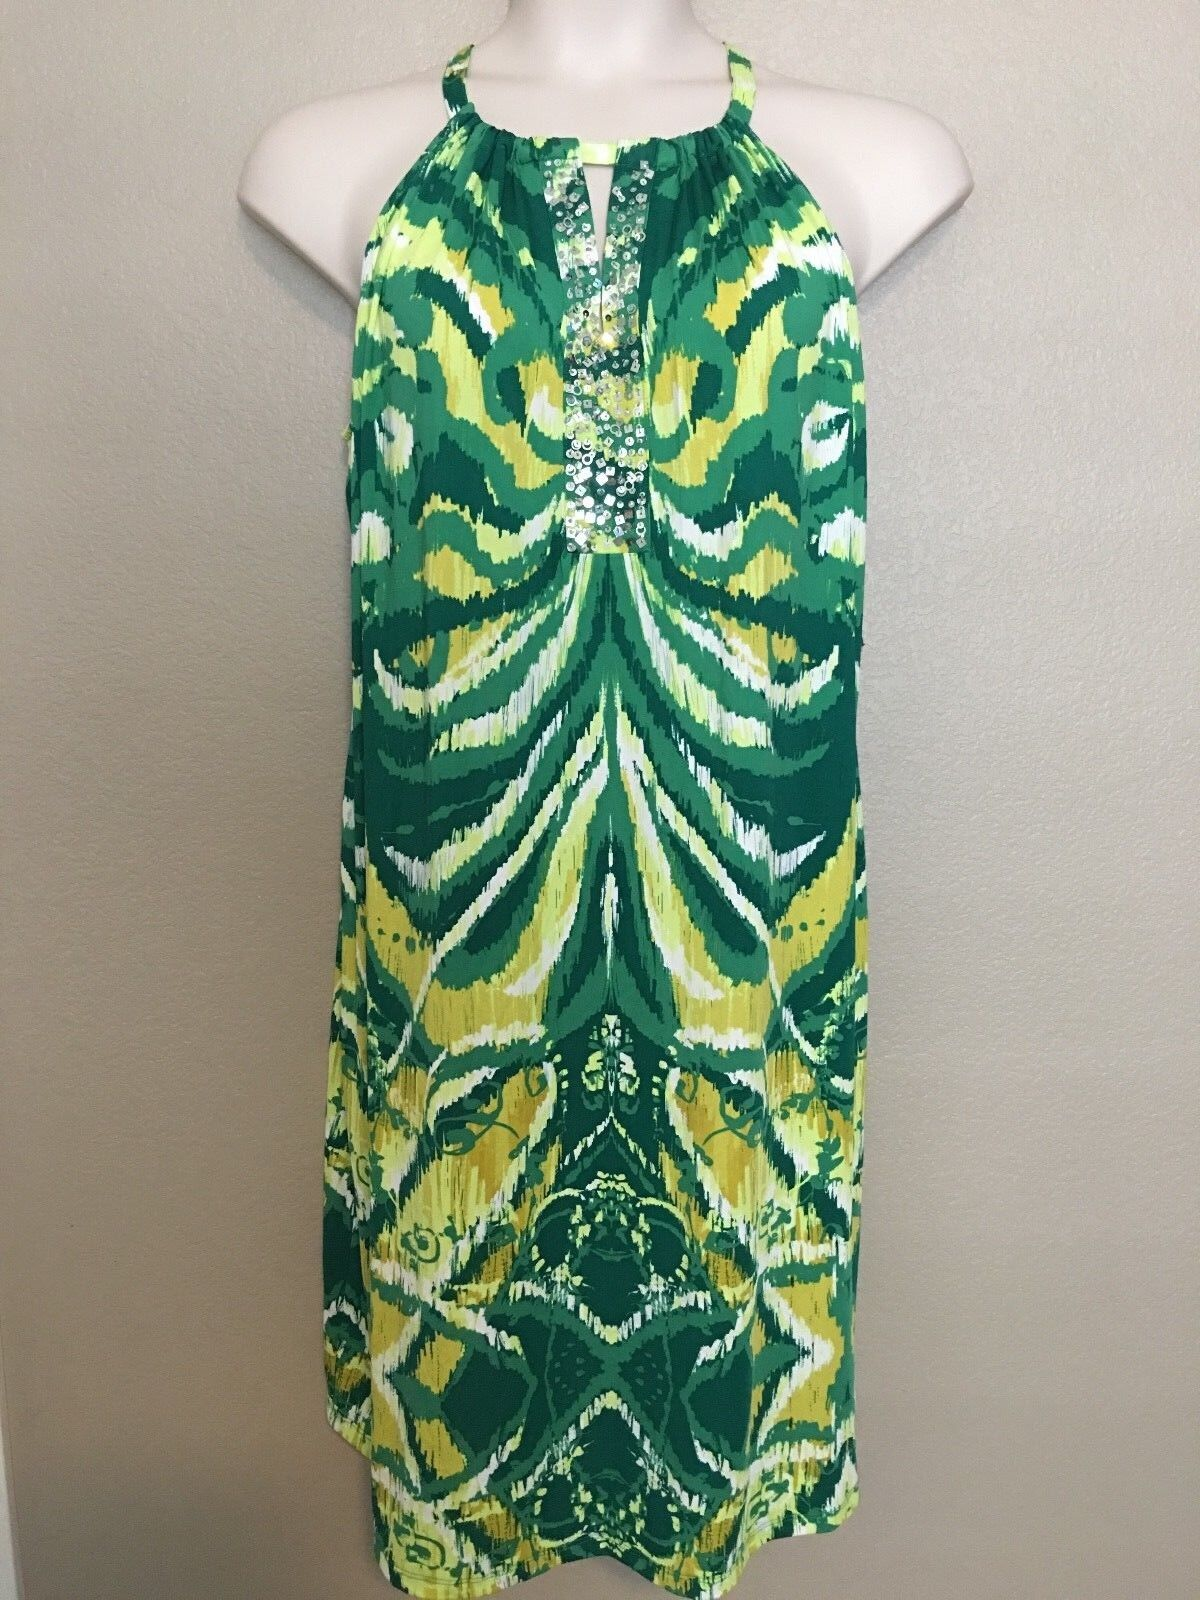 90 INC Women\'s Plus Size 2X Green Yellow Printed Sequin Dress NEW ...